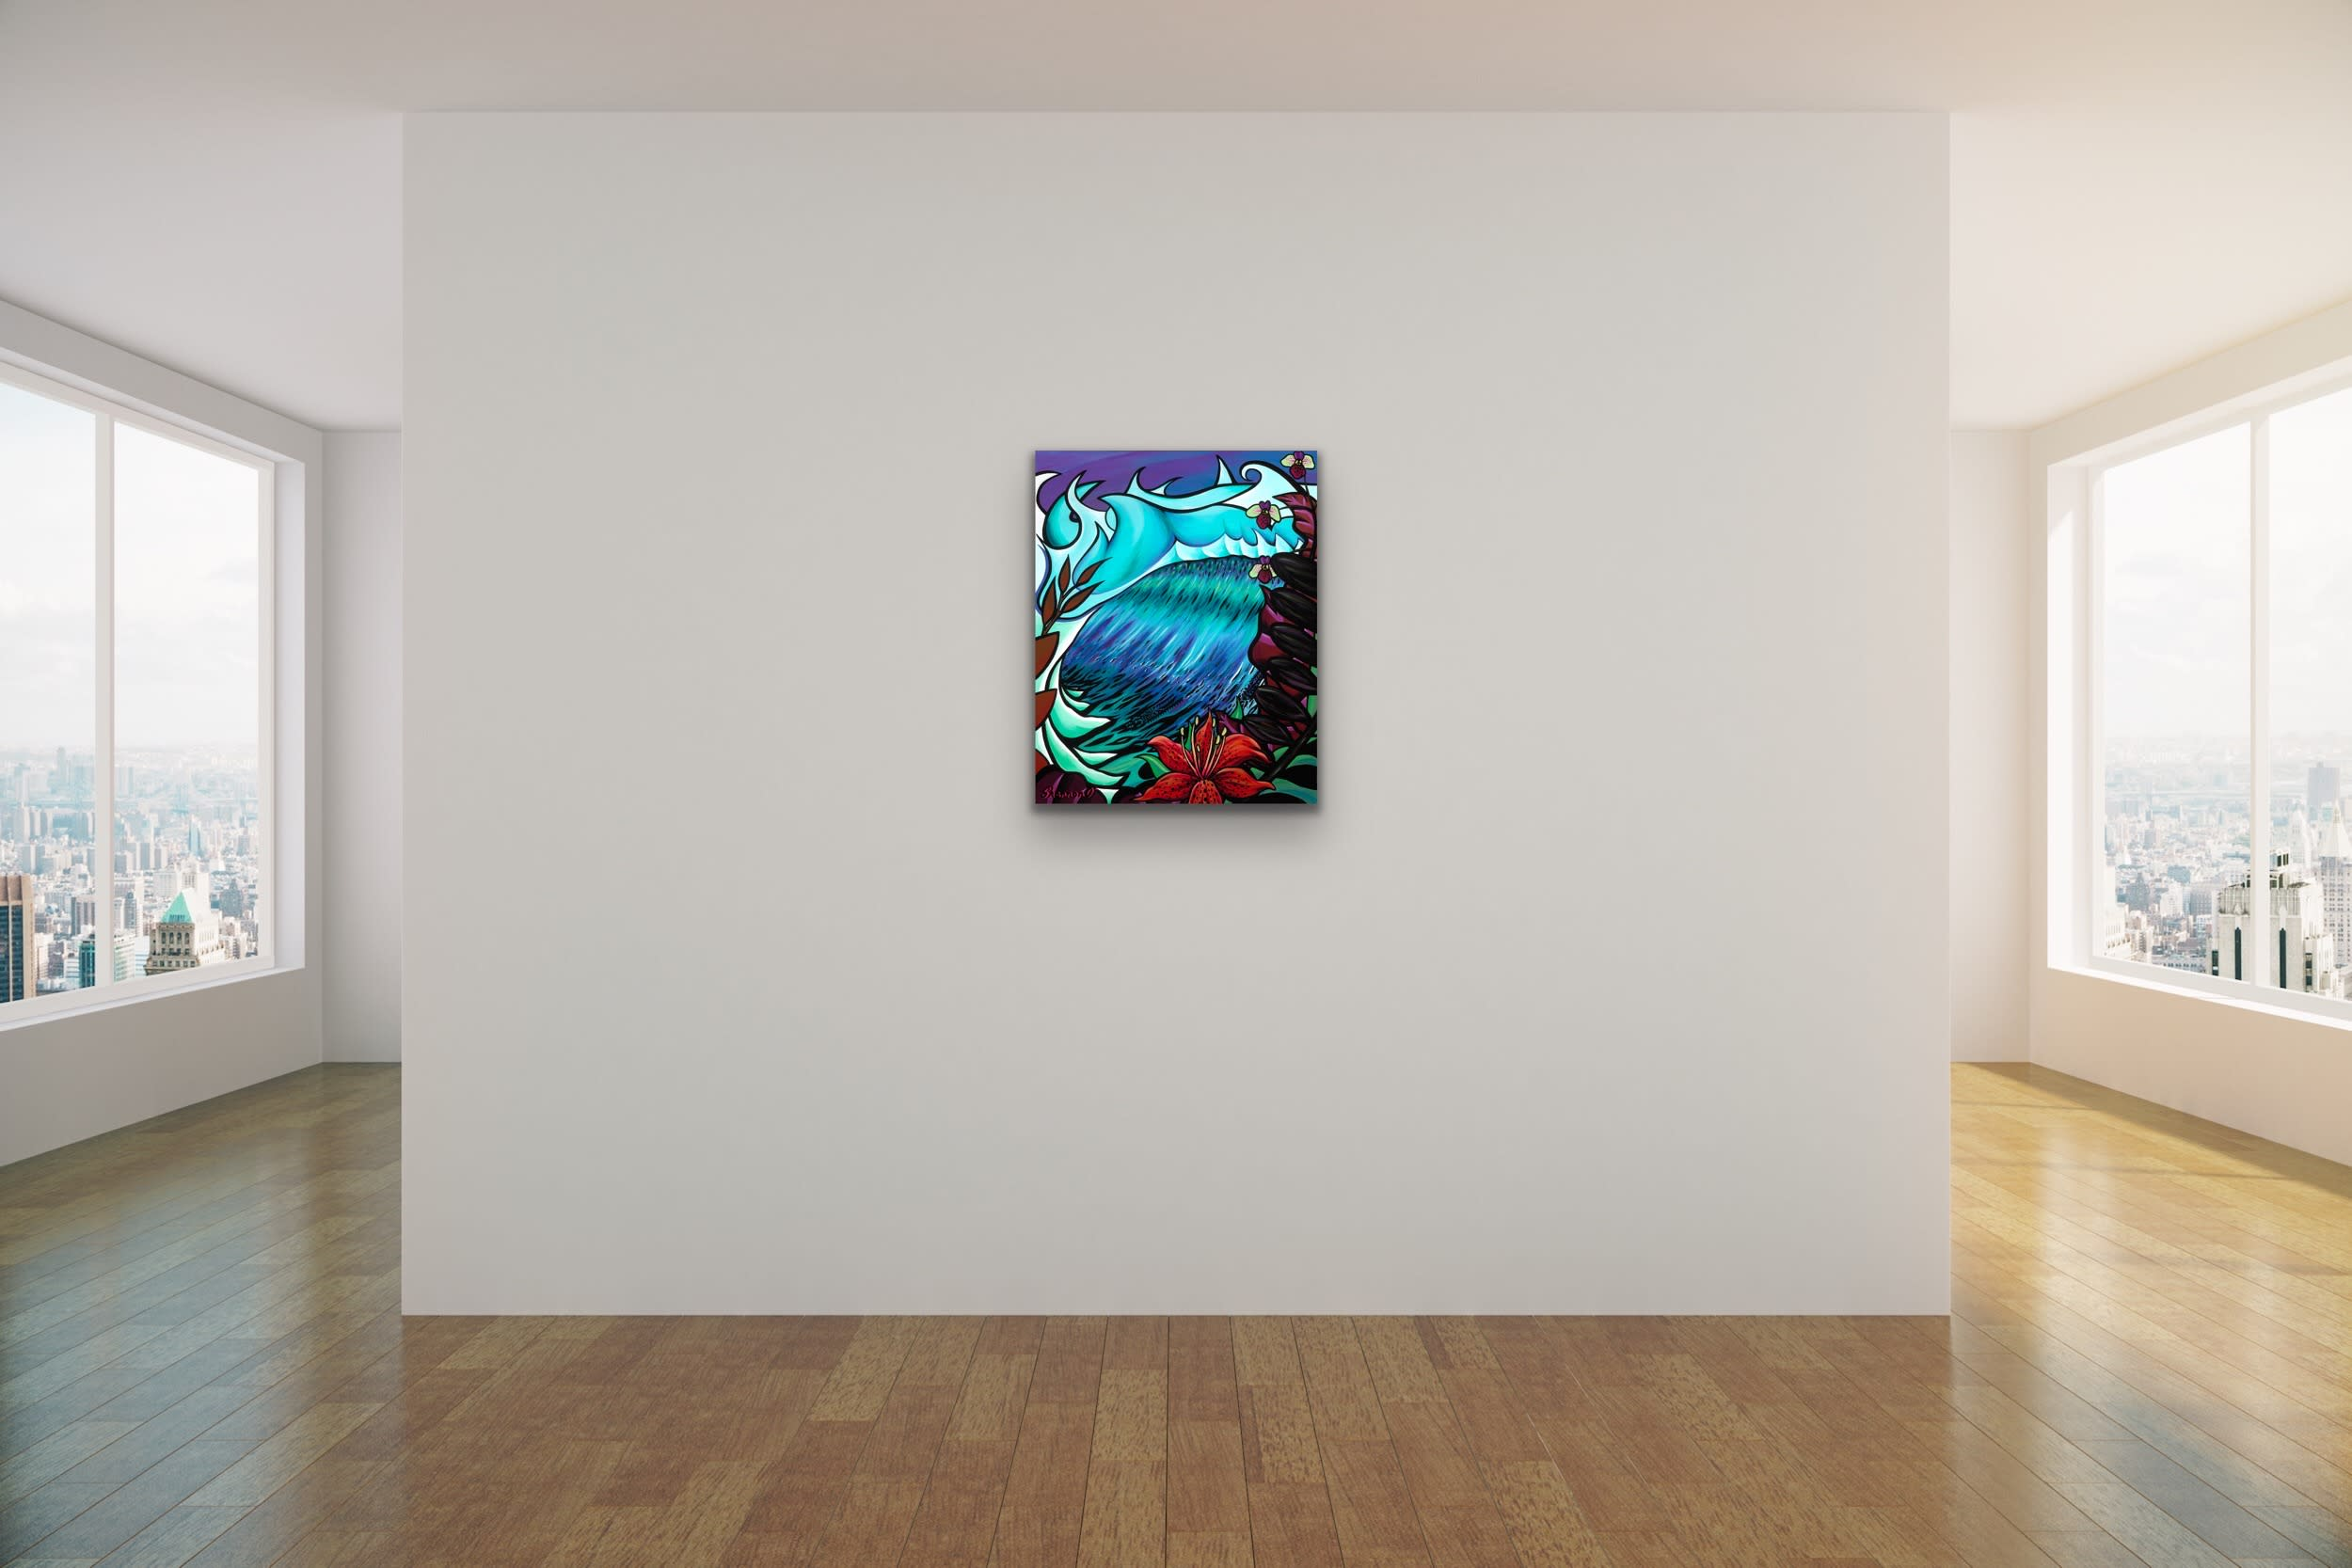 <div class='title'>           Shannon Oconnell Paintings Mock Ups Evo Art Maui Lahain Front Street Gallery Collect Popular Colorful Ocean Flowers Scenery Waves 10         </div>